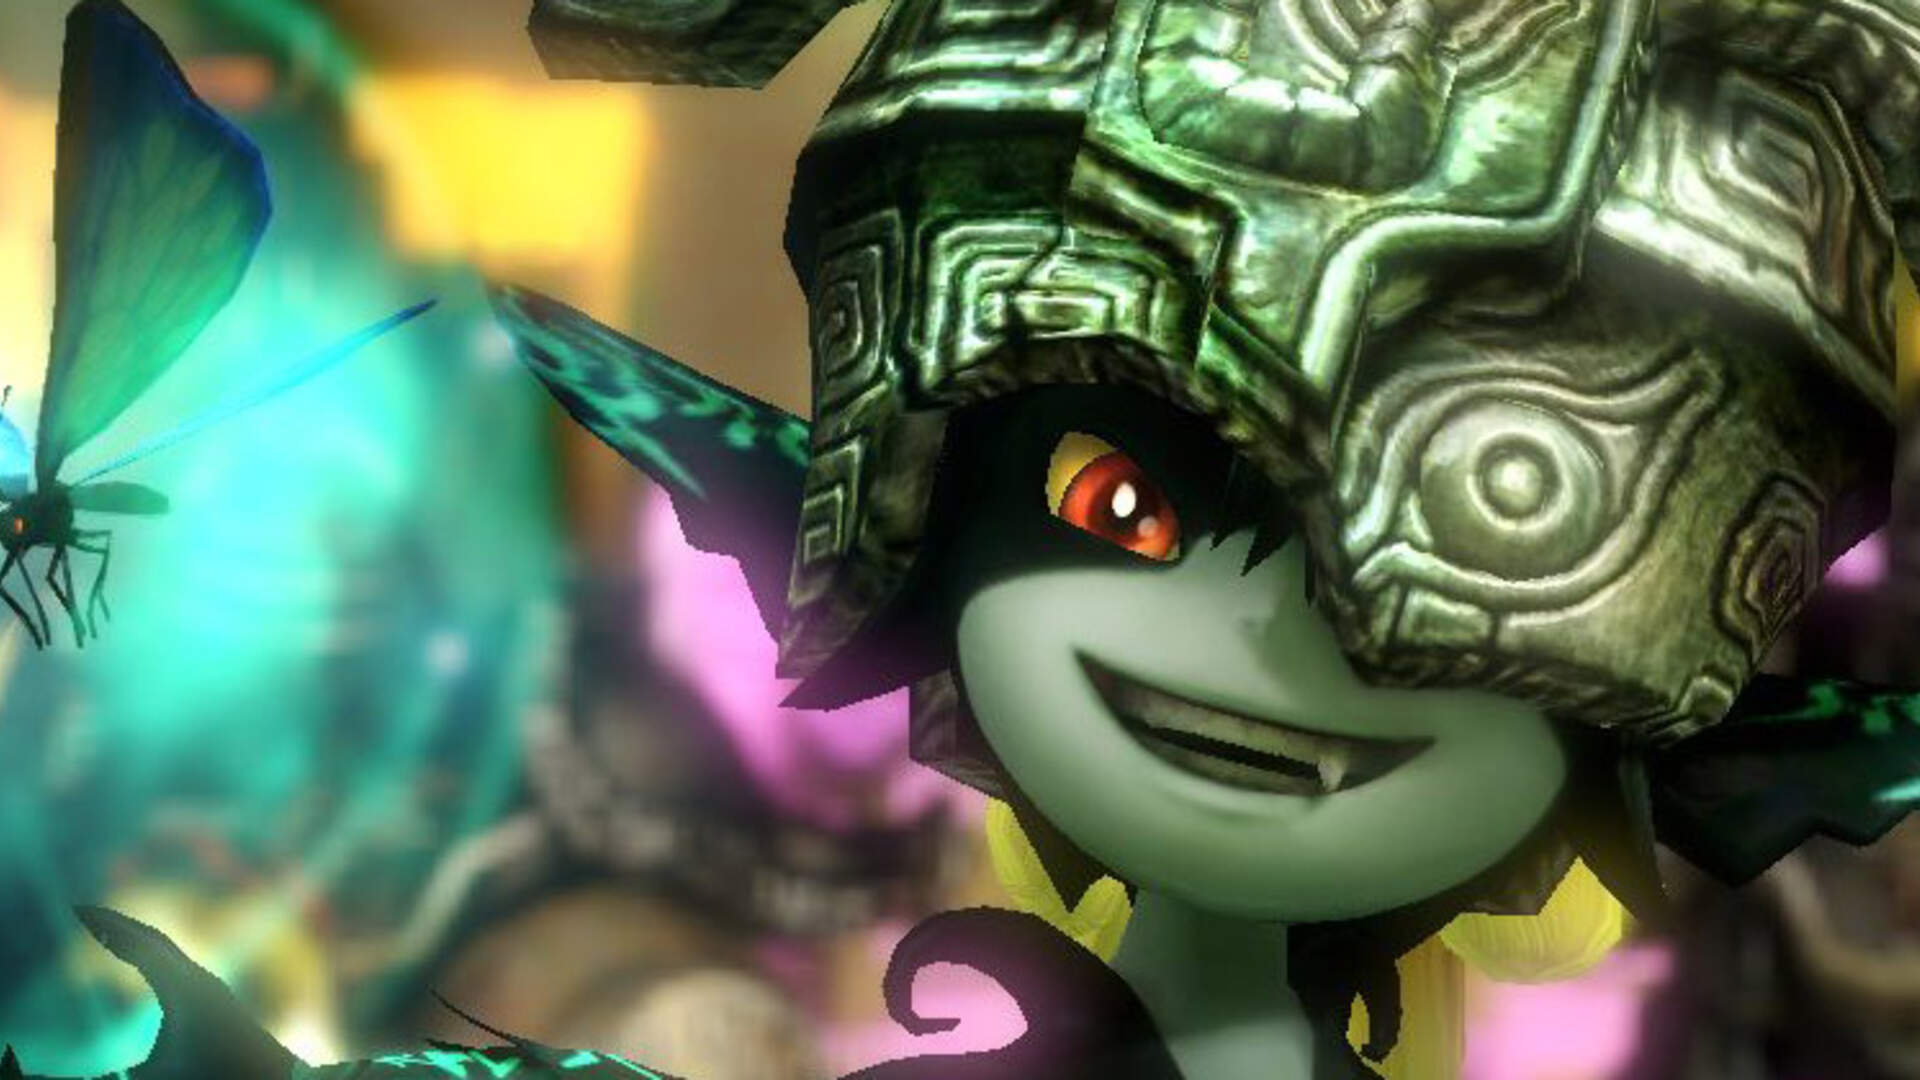 Hyrule Warriors Wii U Review: Love Blooming on a Battlefield